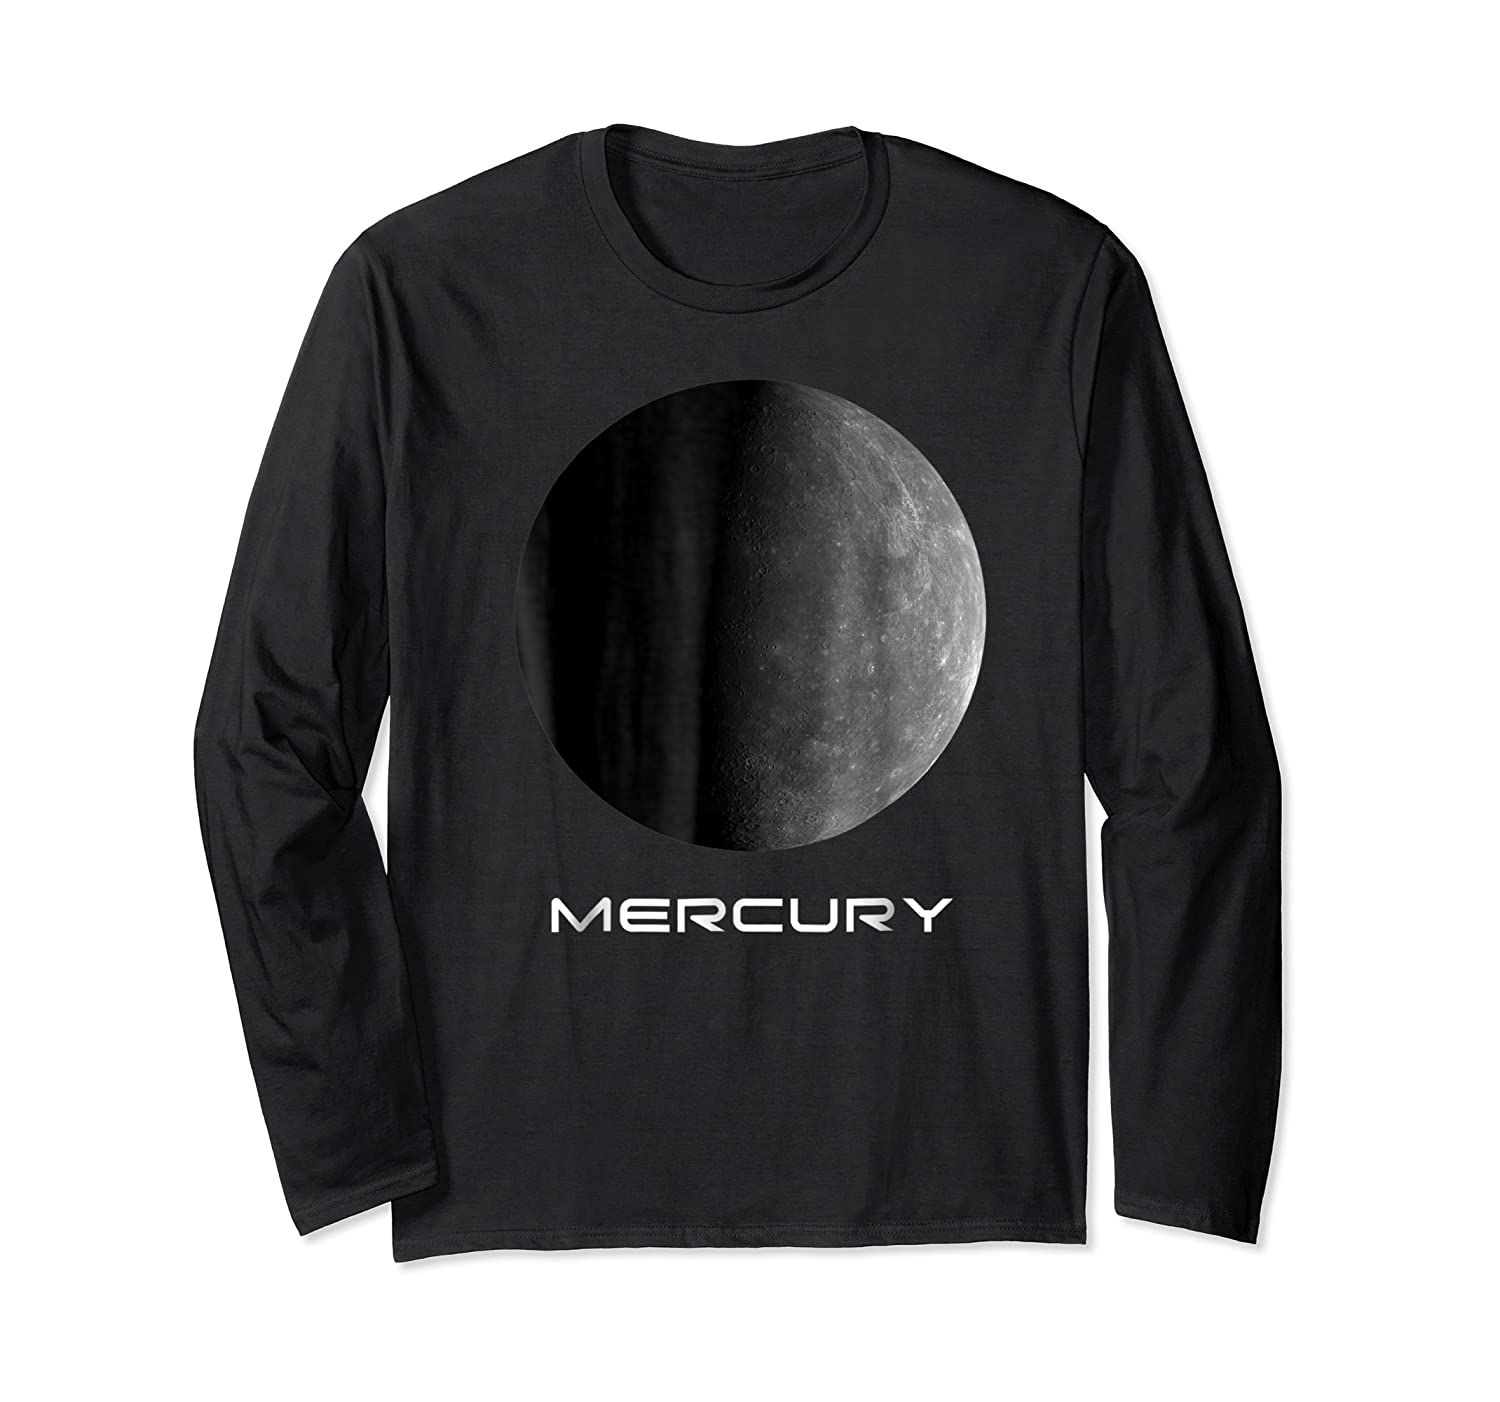 Mercury Perfect Gift For Astronomy Or Space Lovers Shirts Long Sleeve T-shirt